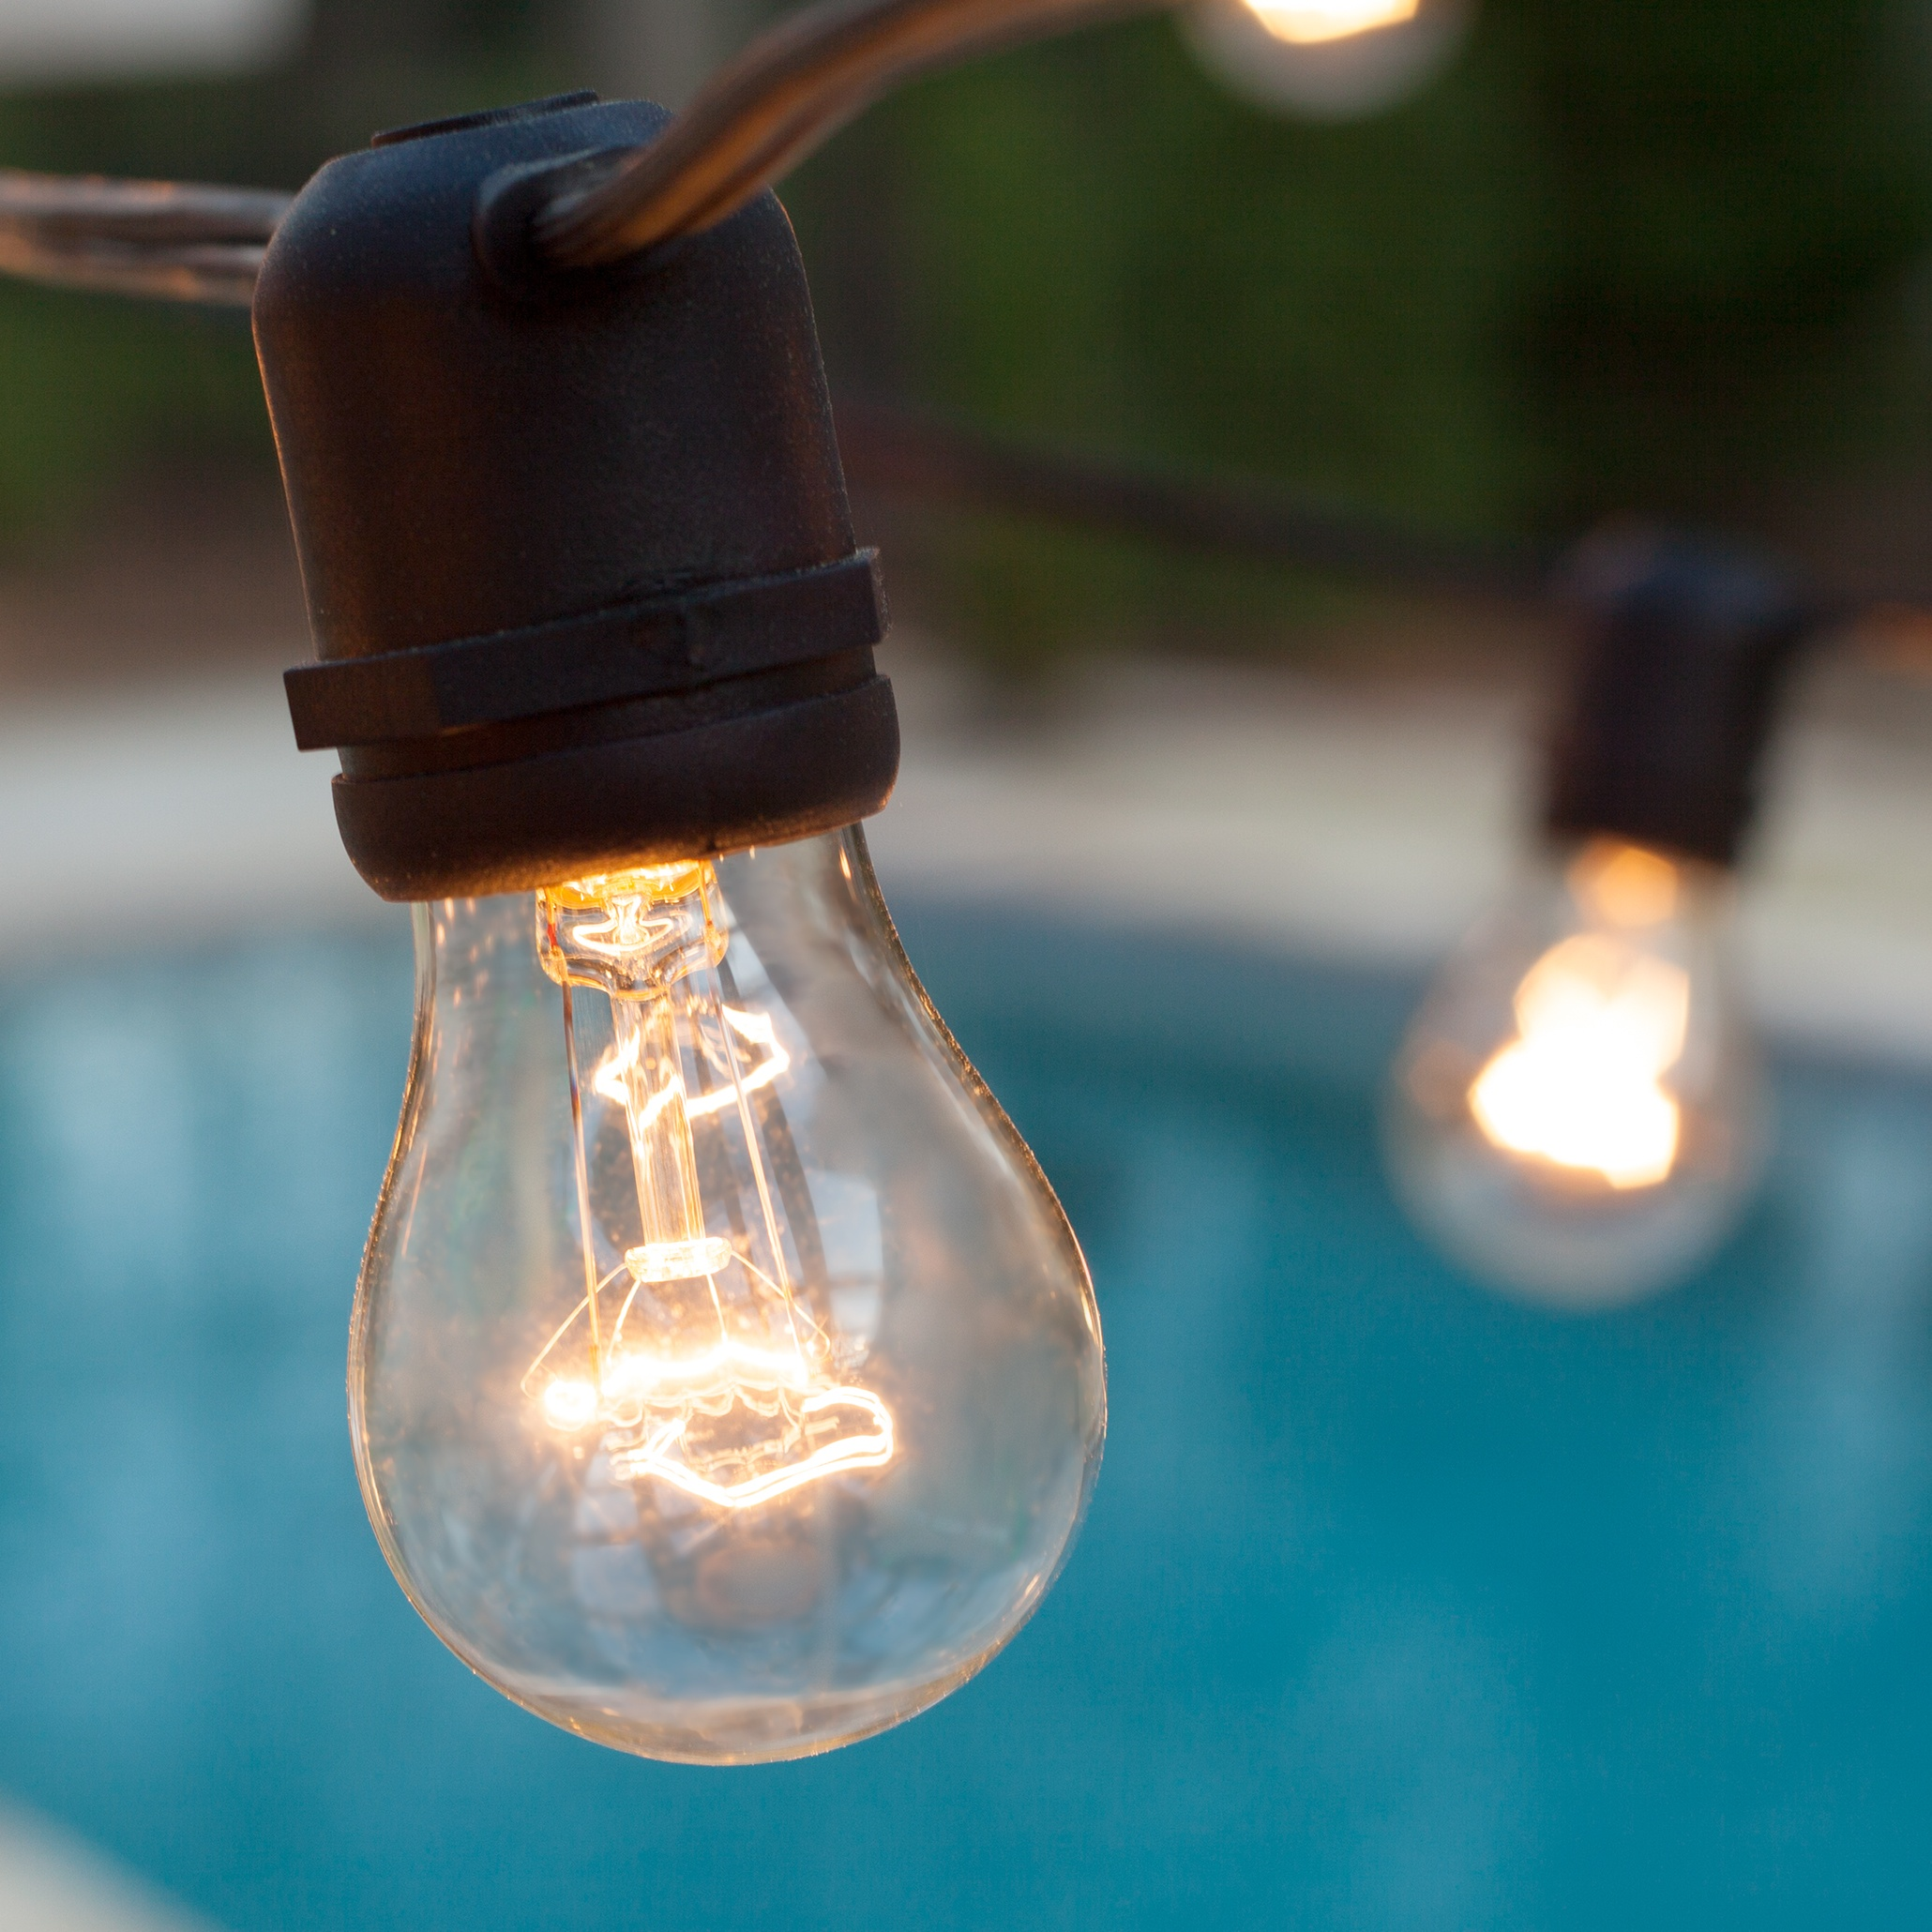 commercial patio lights. Patio Lights - Commercial Clear String Lights, 24 A15 E26 Bulbs Black Wire 5